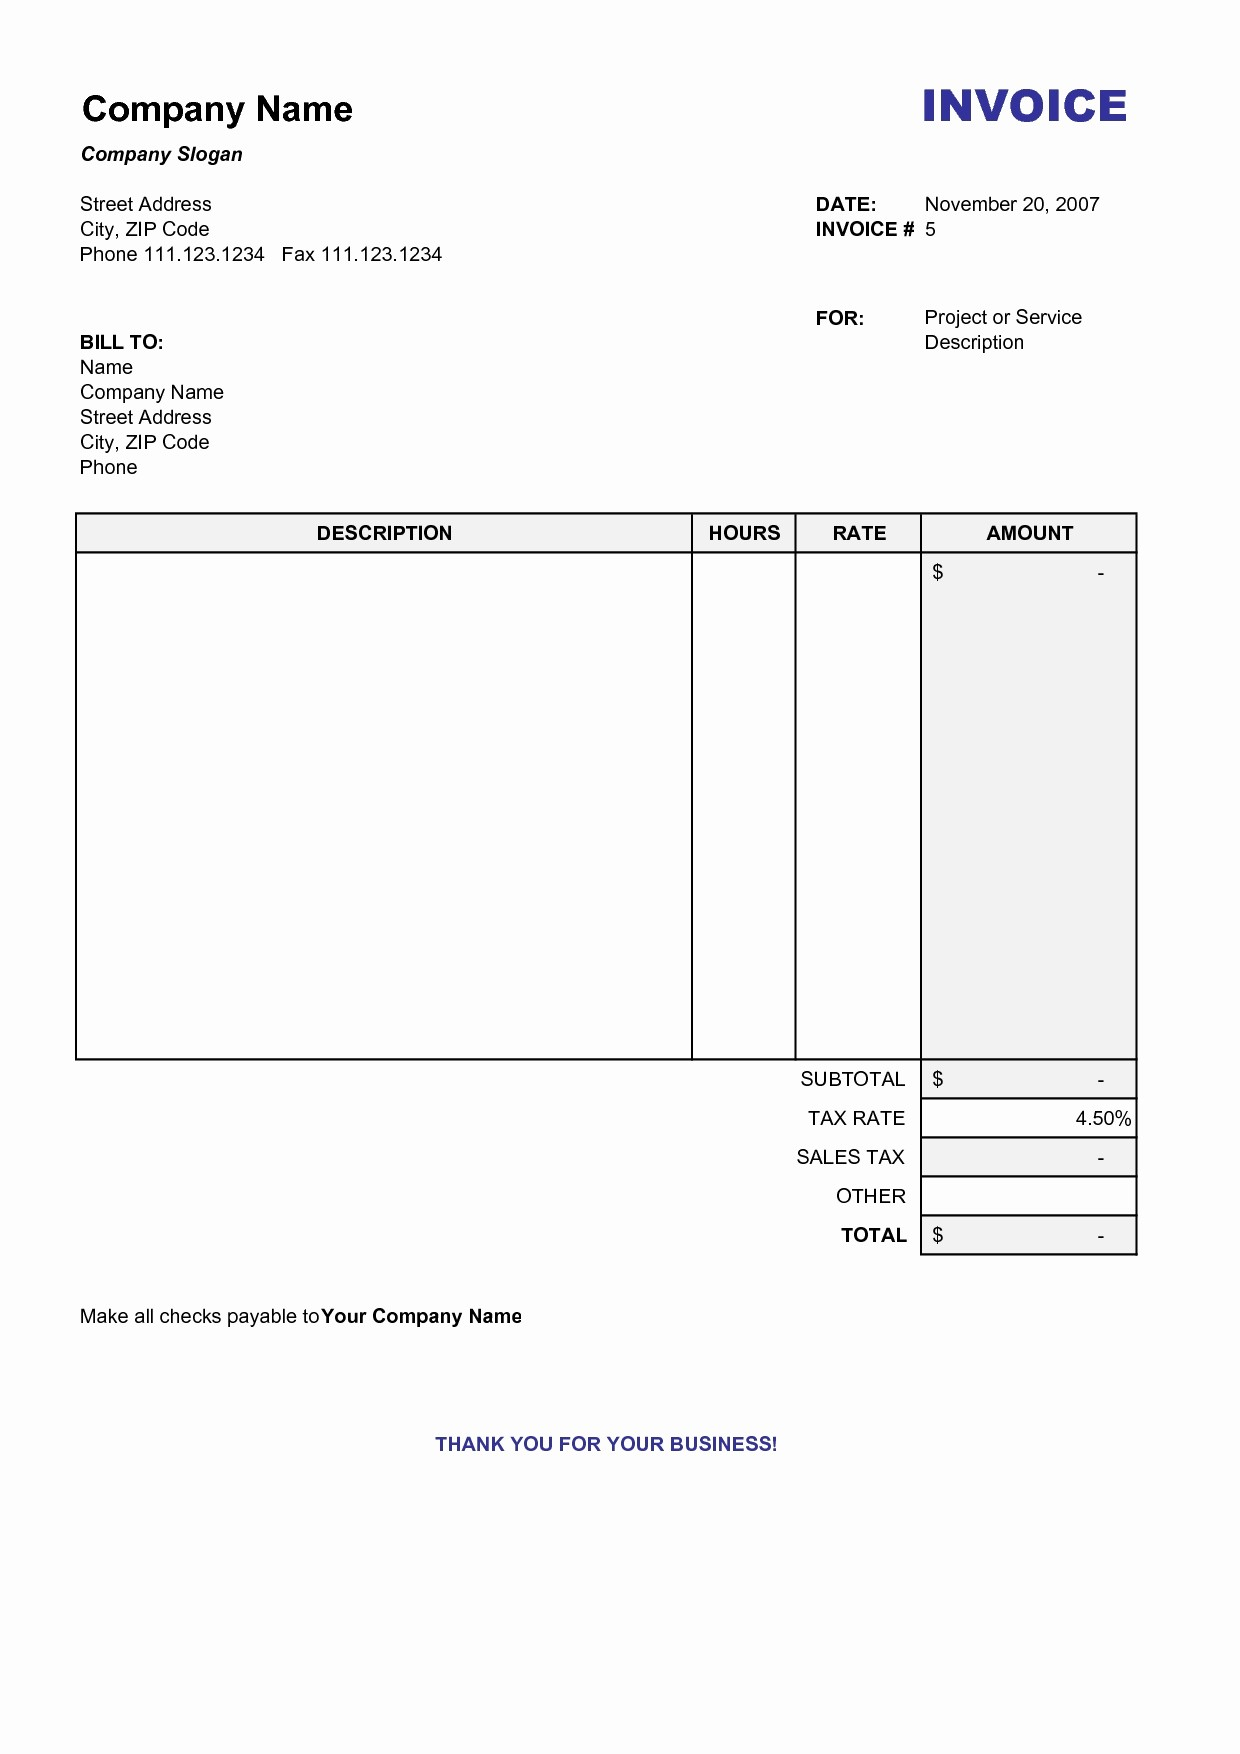 Free Downloadable Templates for Word Awesome Free Printable Invoice Template Word Invoice Template Ideas